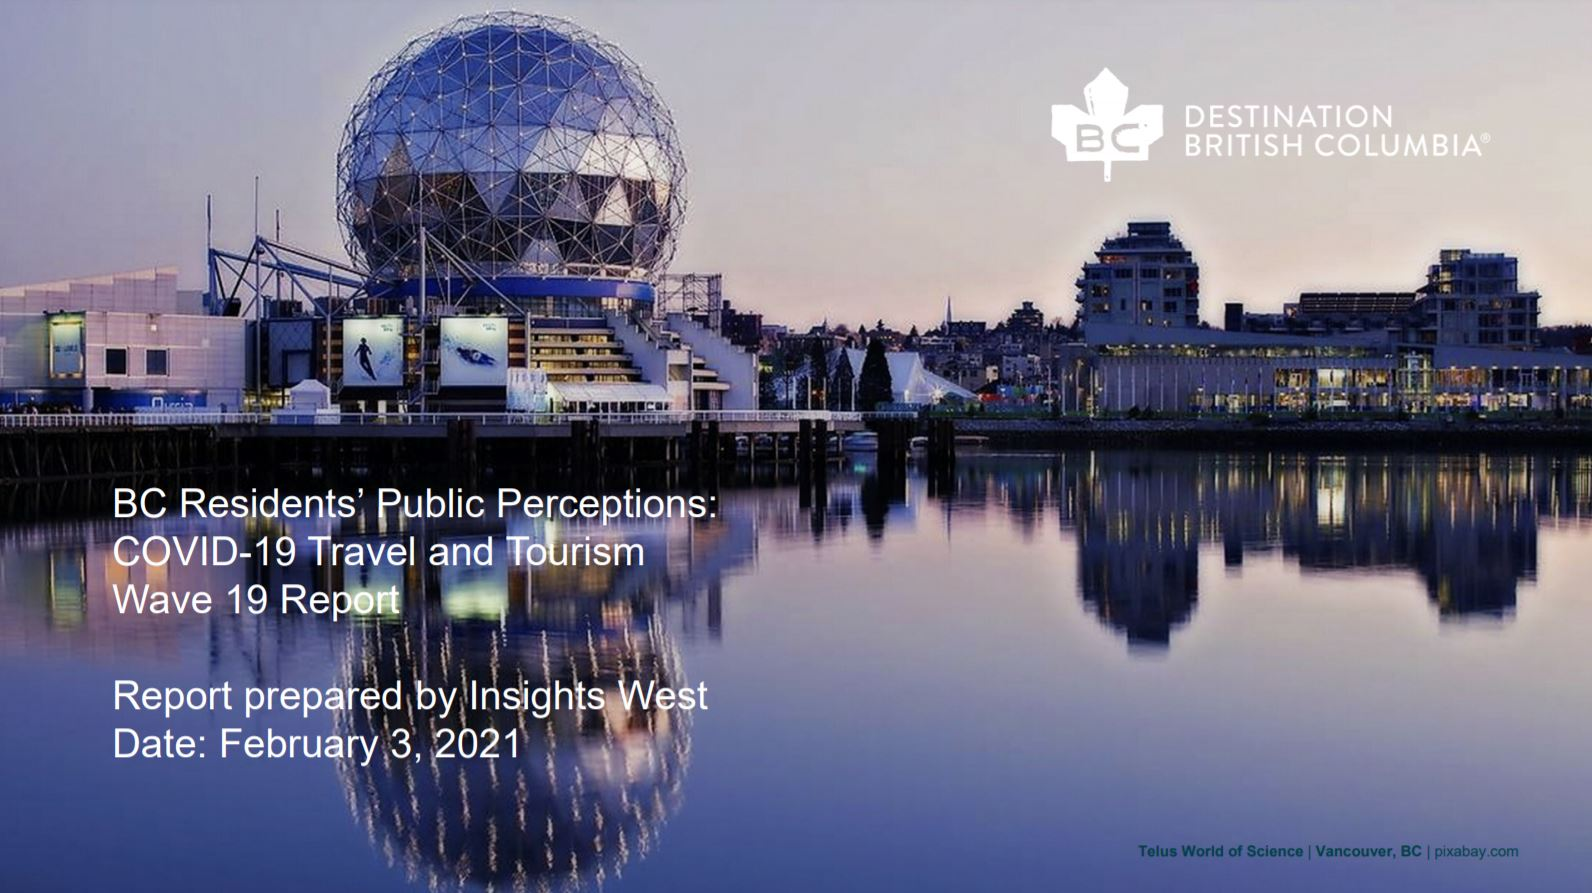 BC's Residents Public Perceptions COVID-19 Travel and Tourism: Wave 19 Report